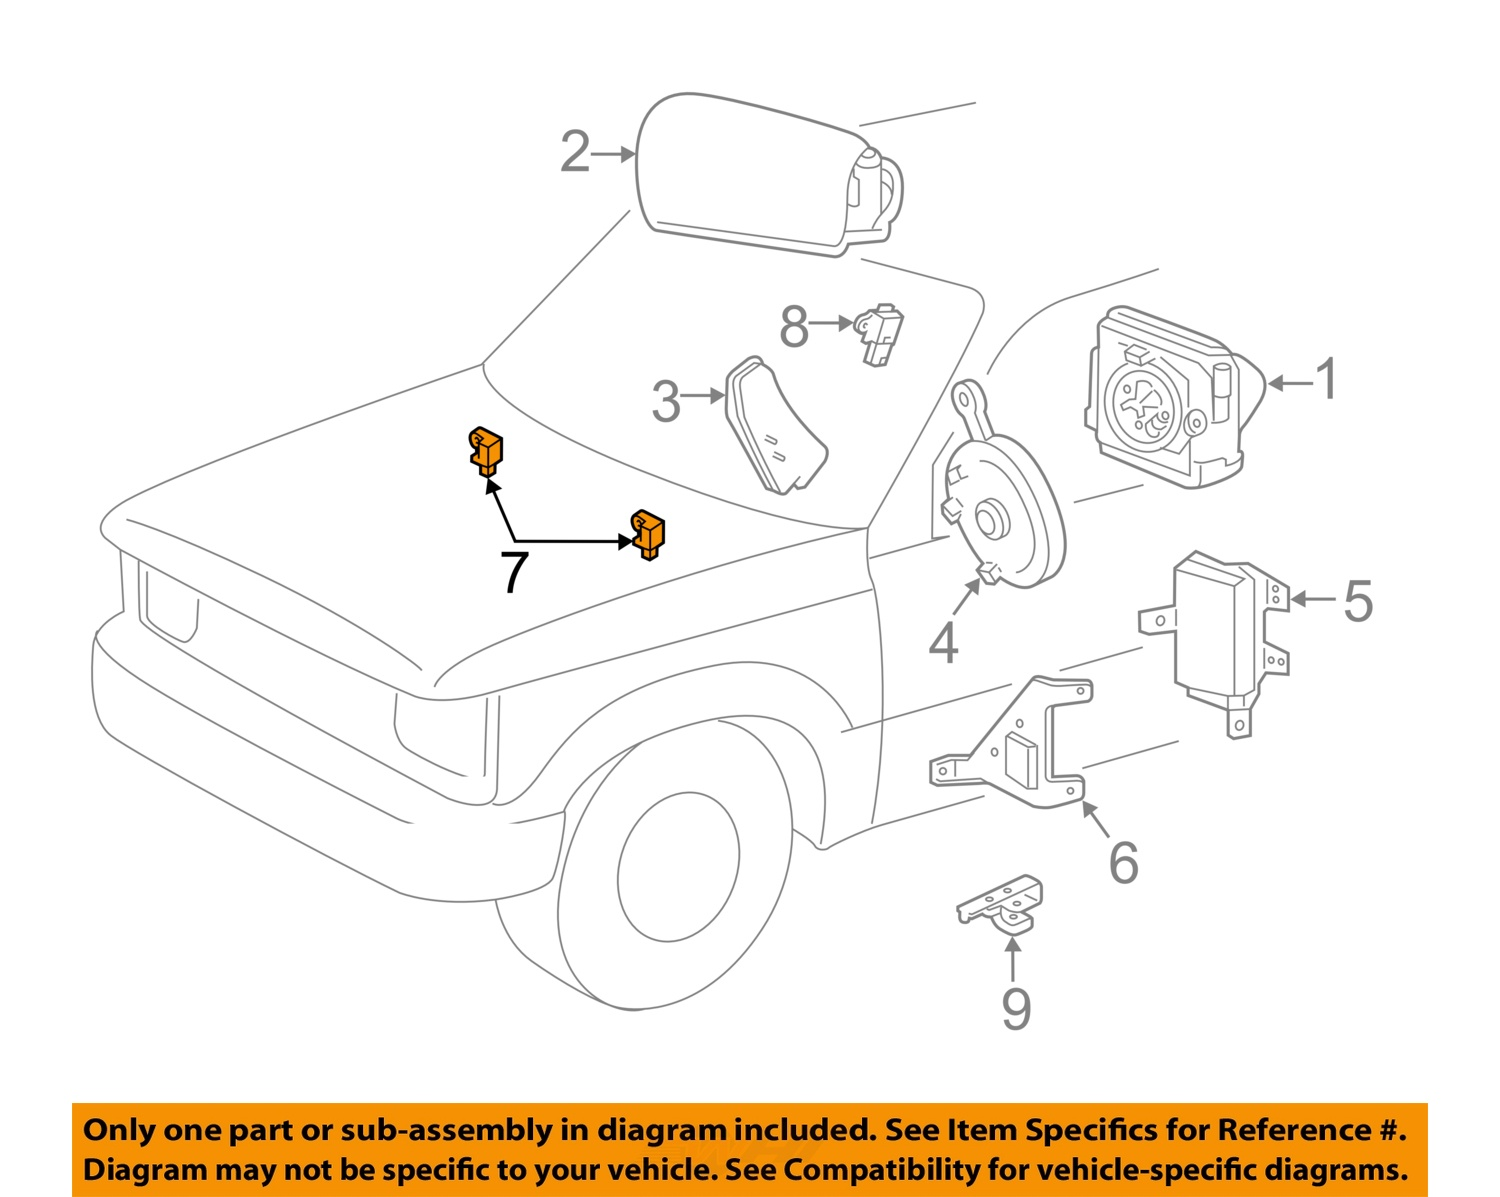 Volkswagen Alarm Horn Location Get Free Image About Wiring Diagram